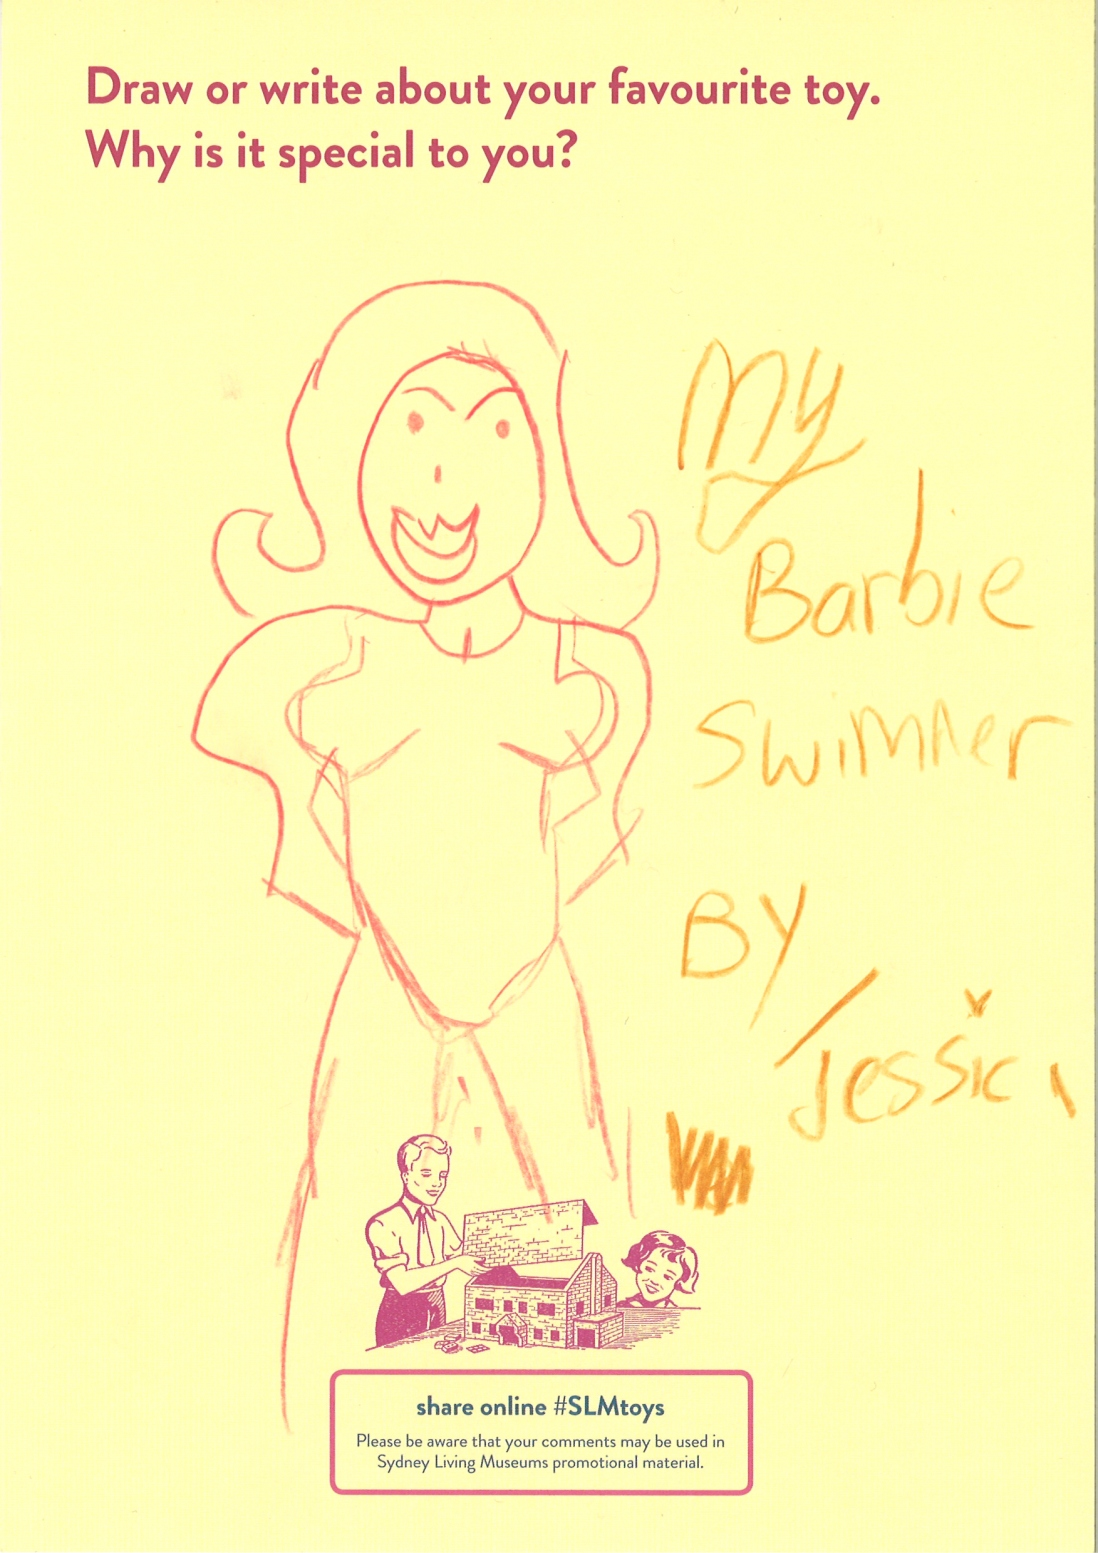 A drawing of Barbie in a swimming costume